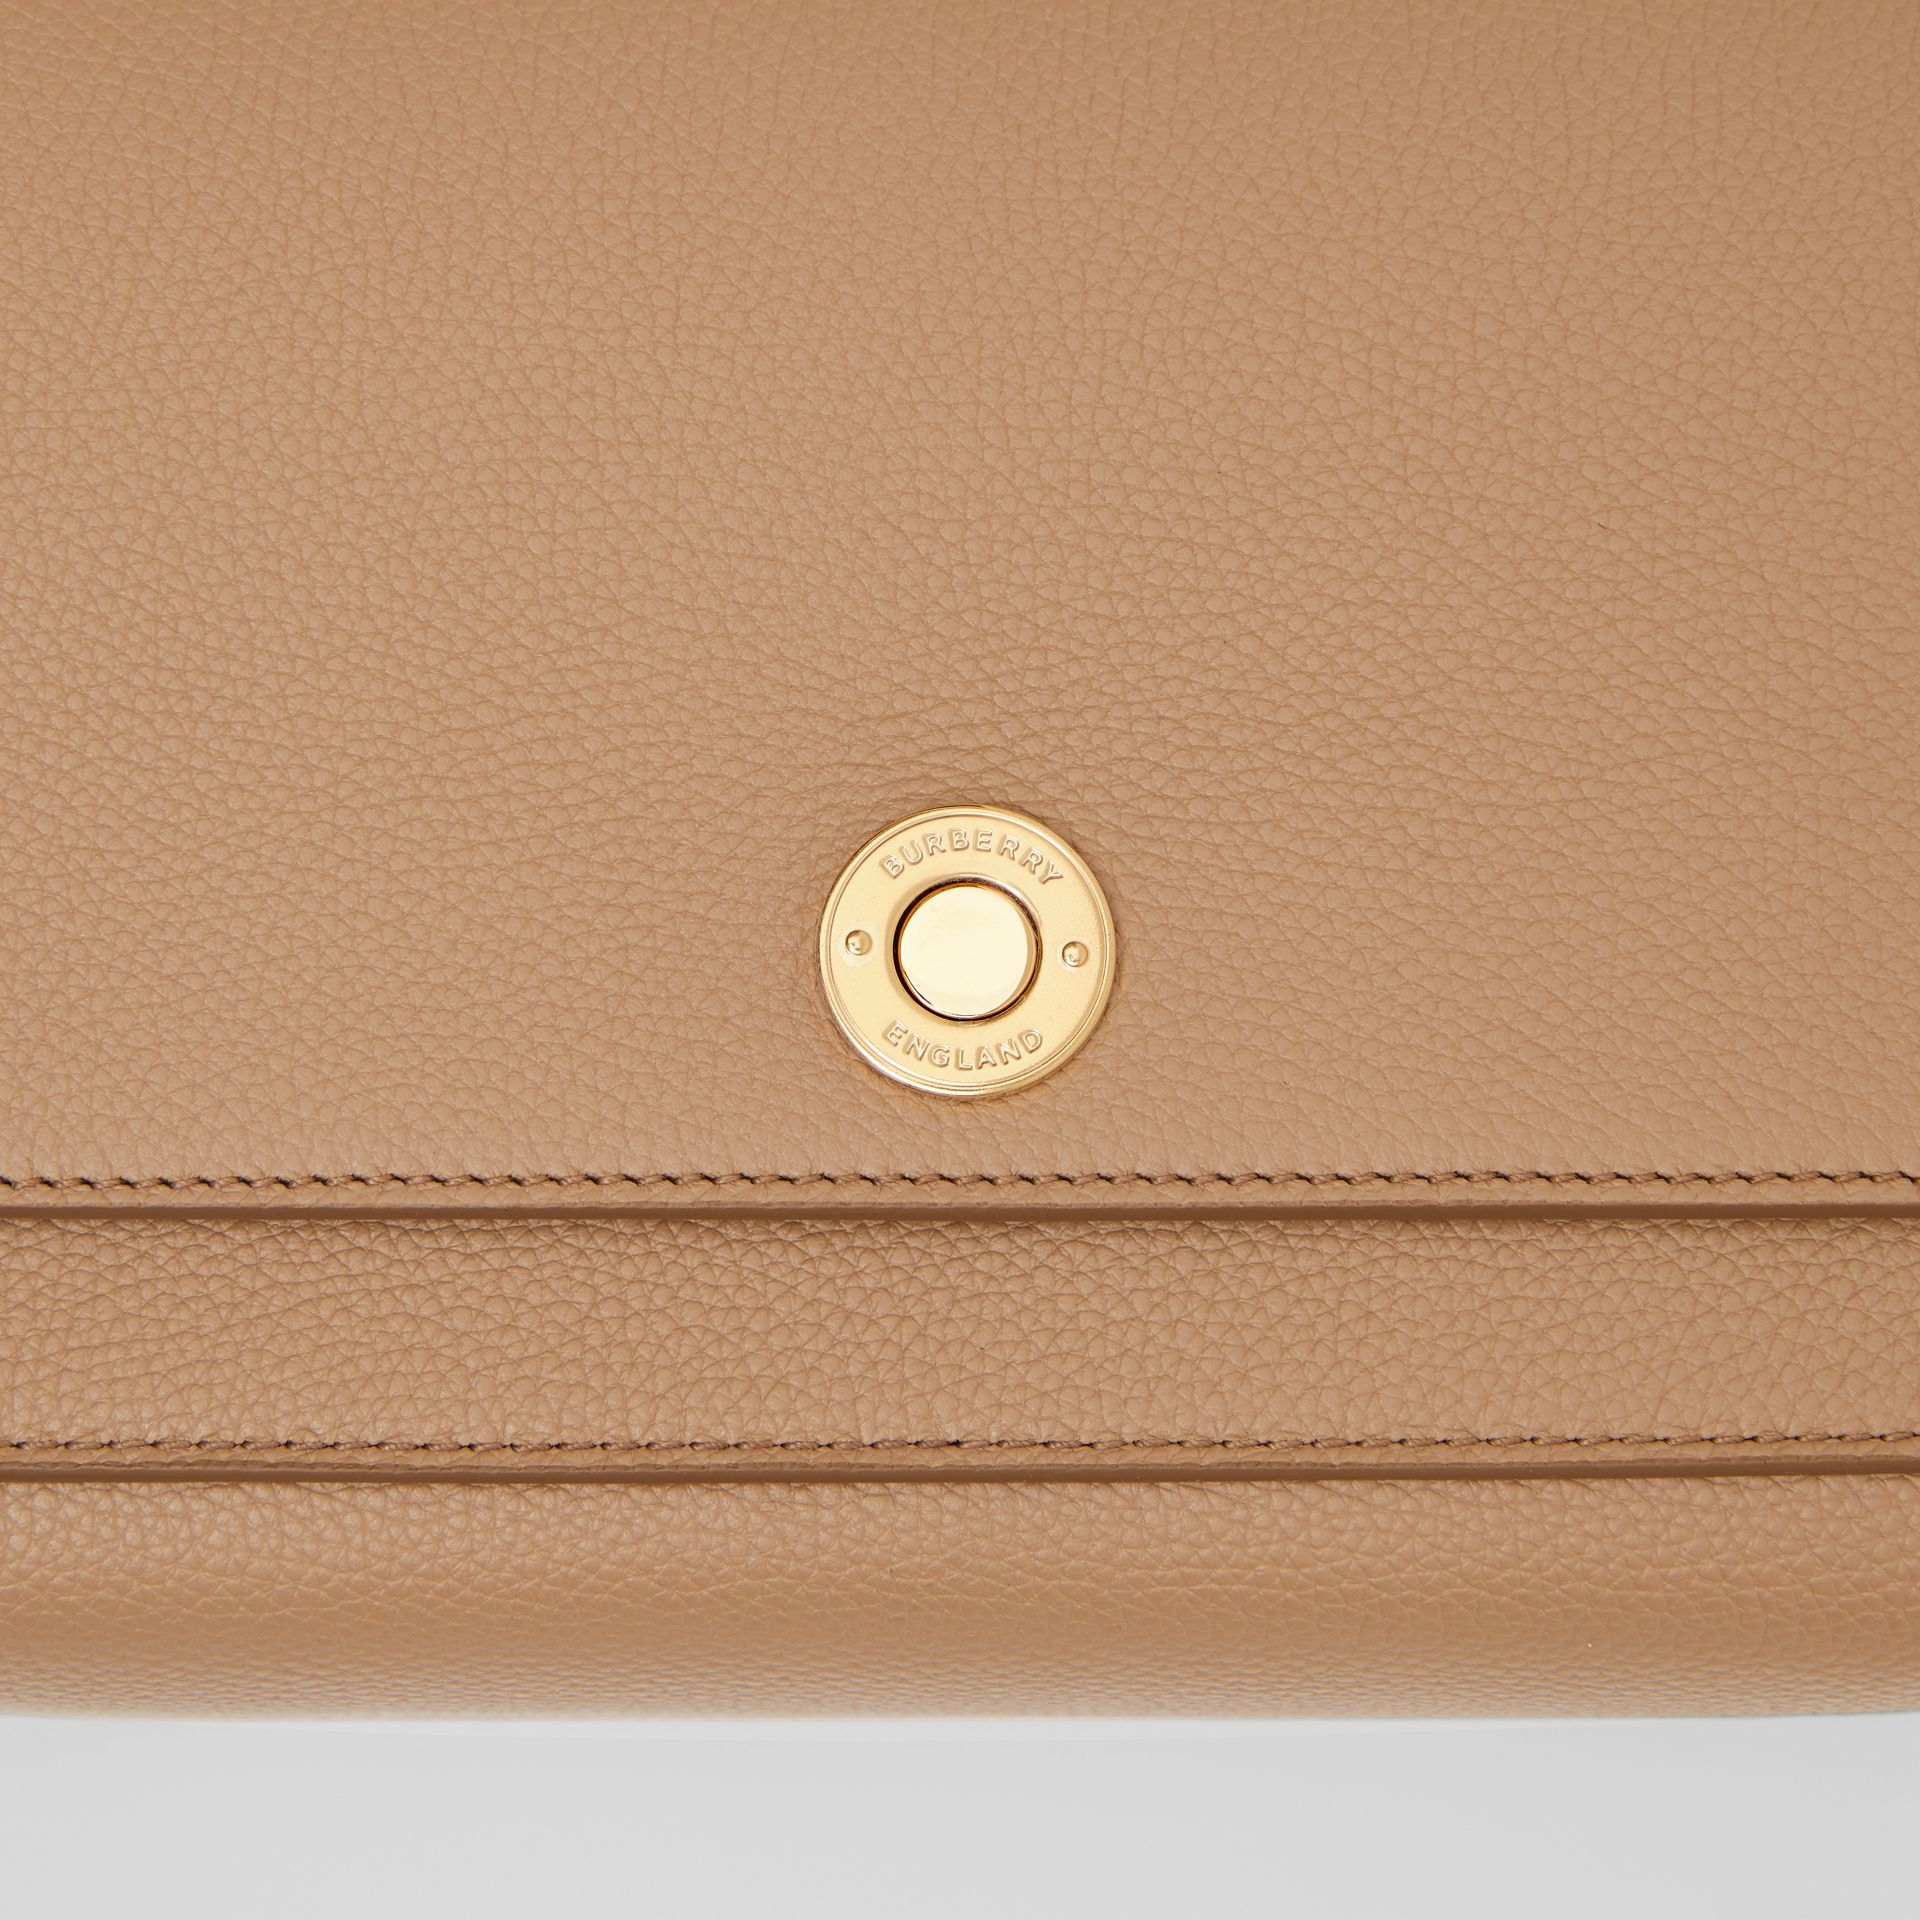 Grainy Leather Note Crossbody Bag in Camel - Women | Burberry - gallery image 1